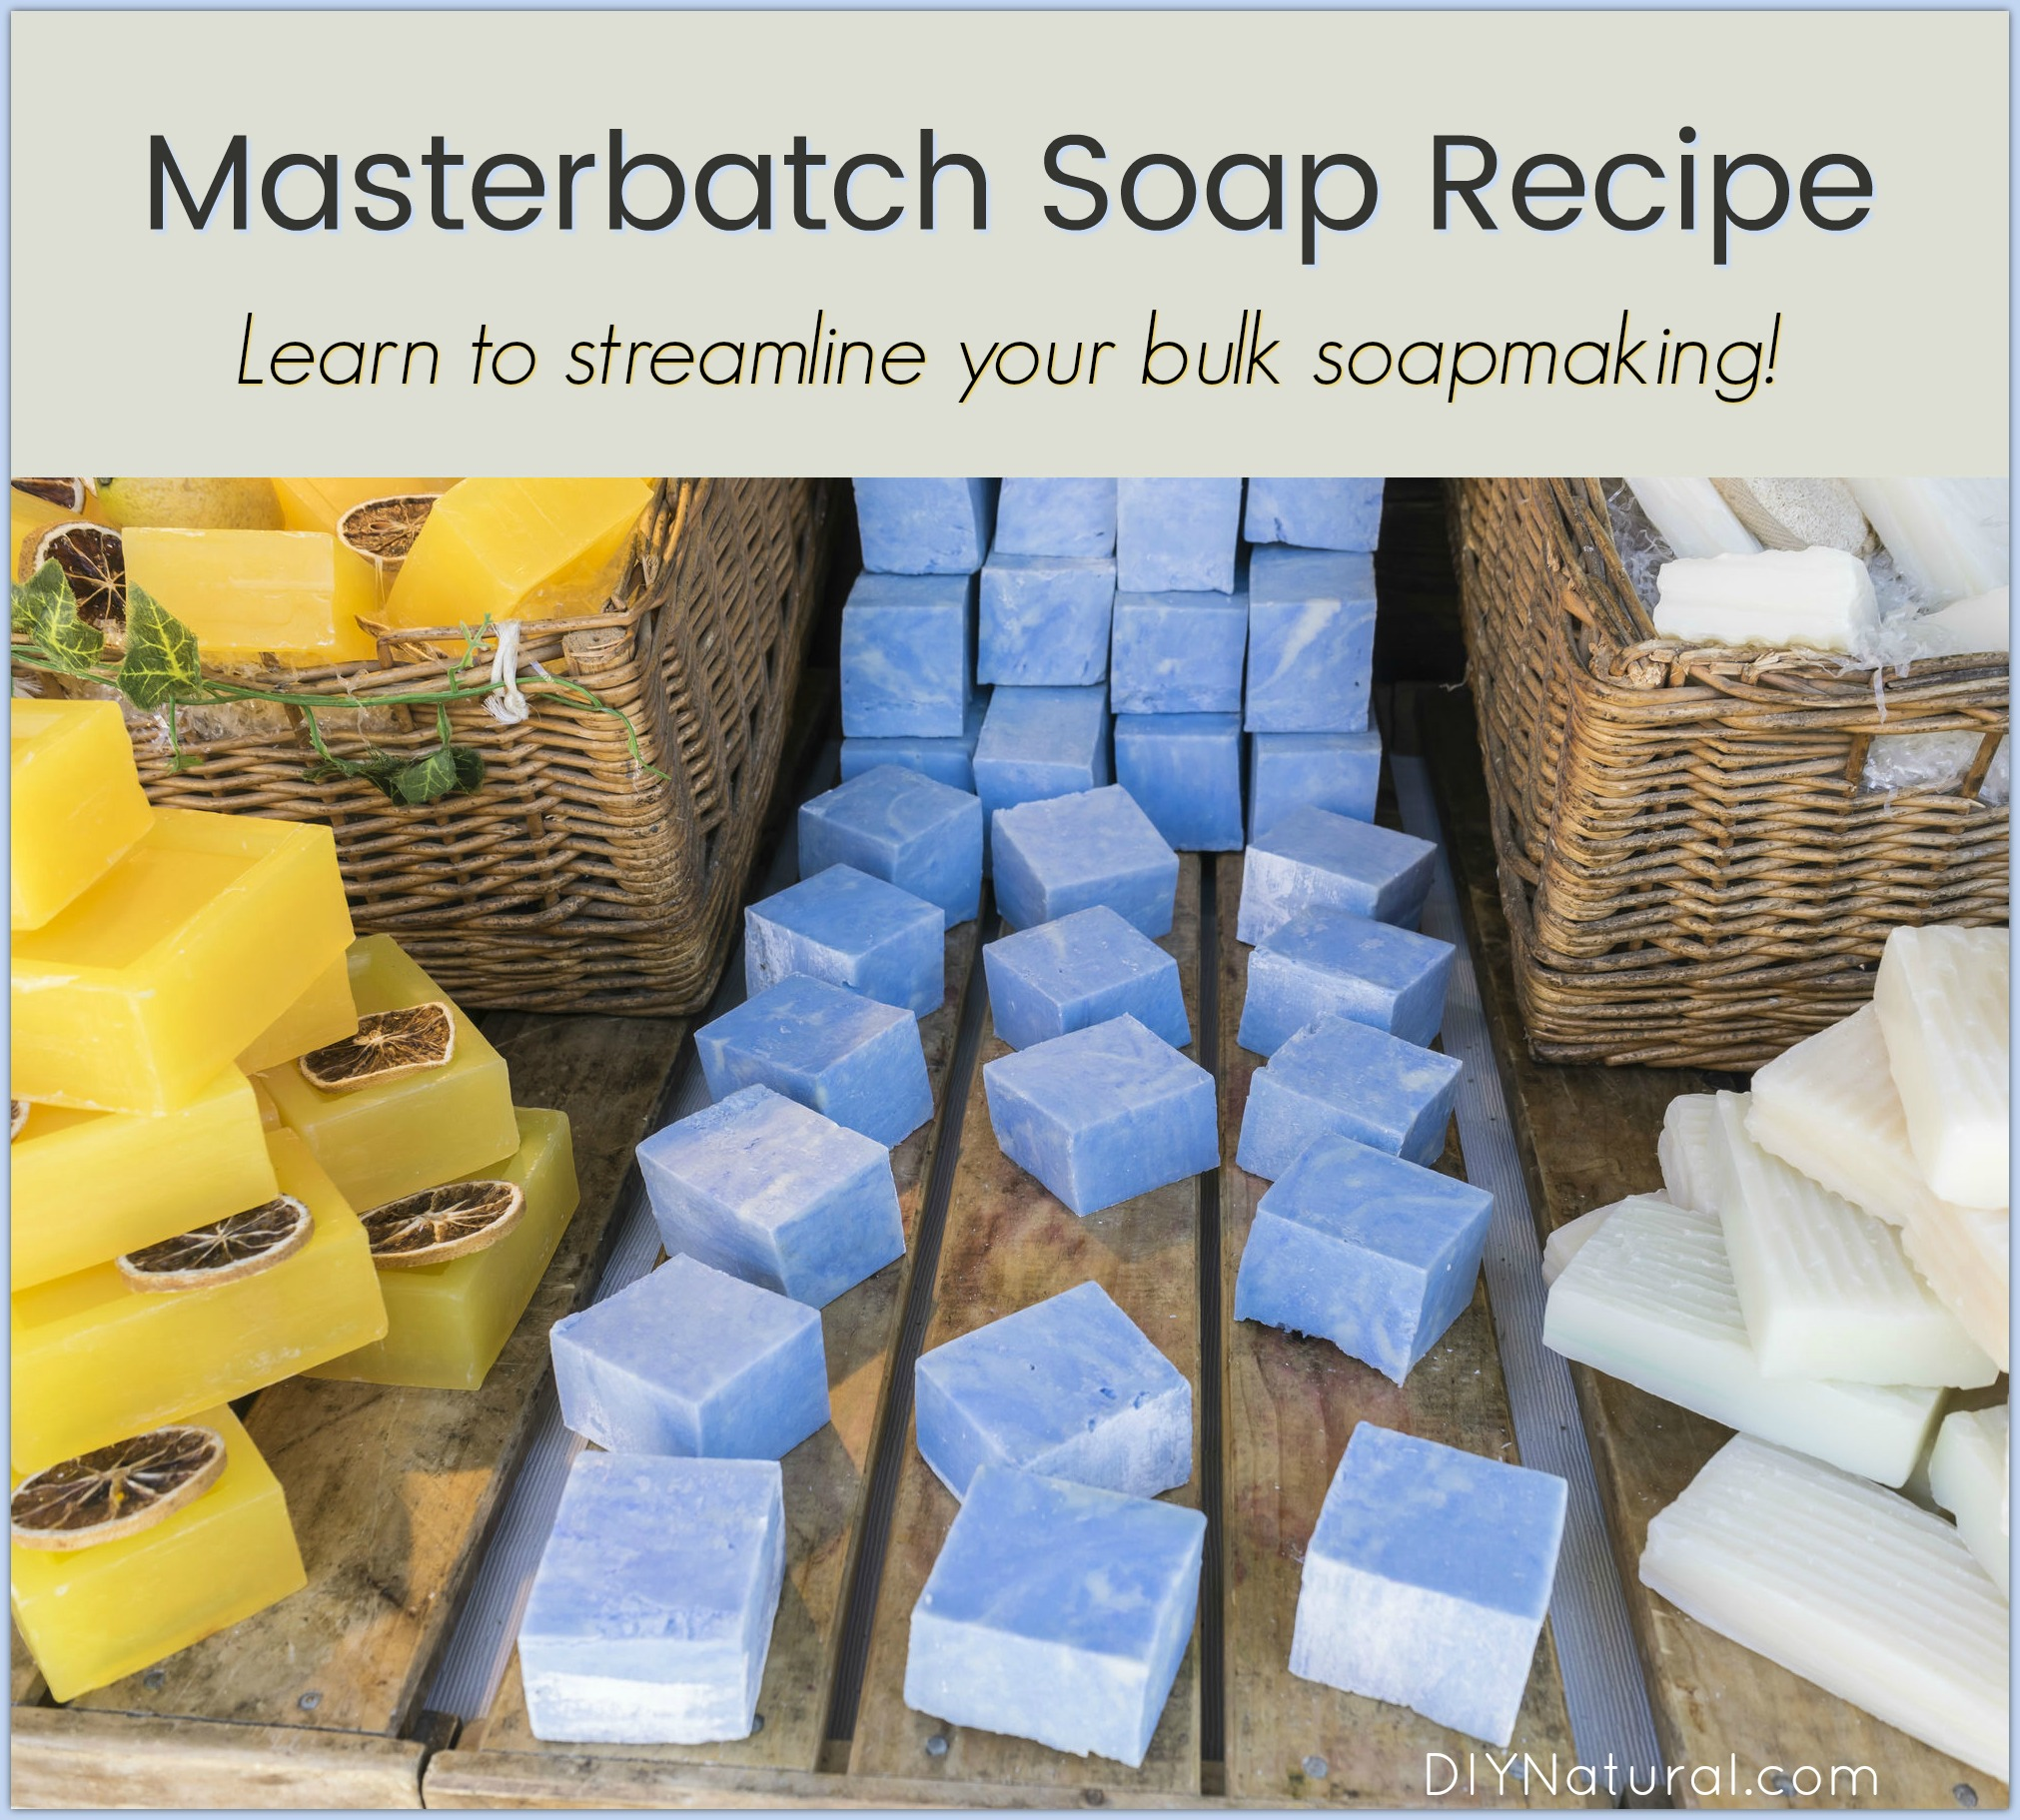 an analysis of soap making process Diy hot process soap in the crockpot is a fast method for homemade soap making ready to use right away - no wait time.